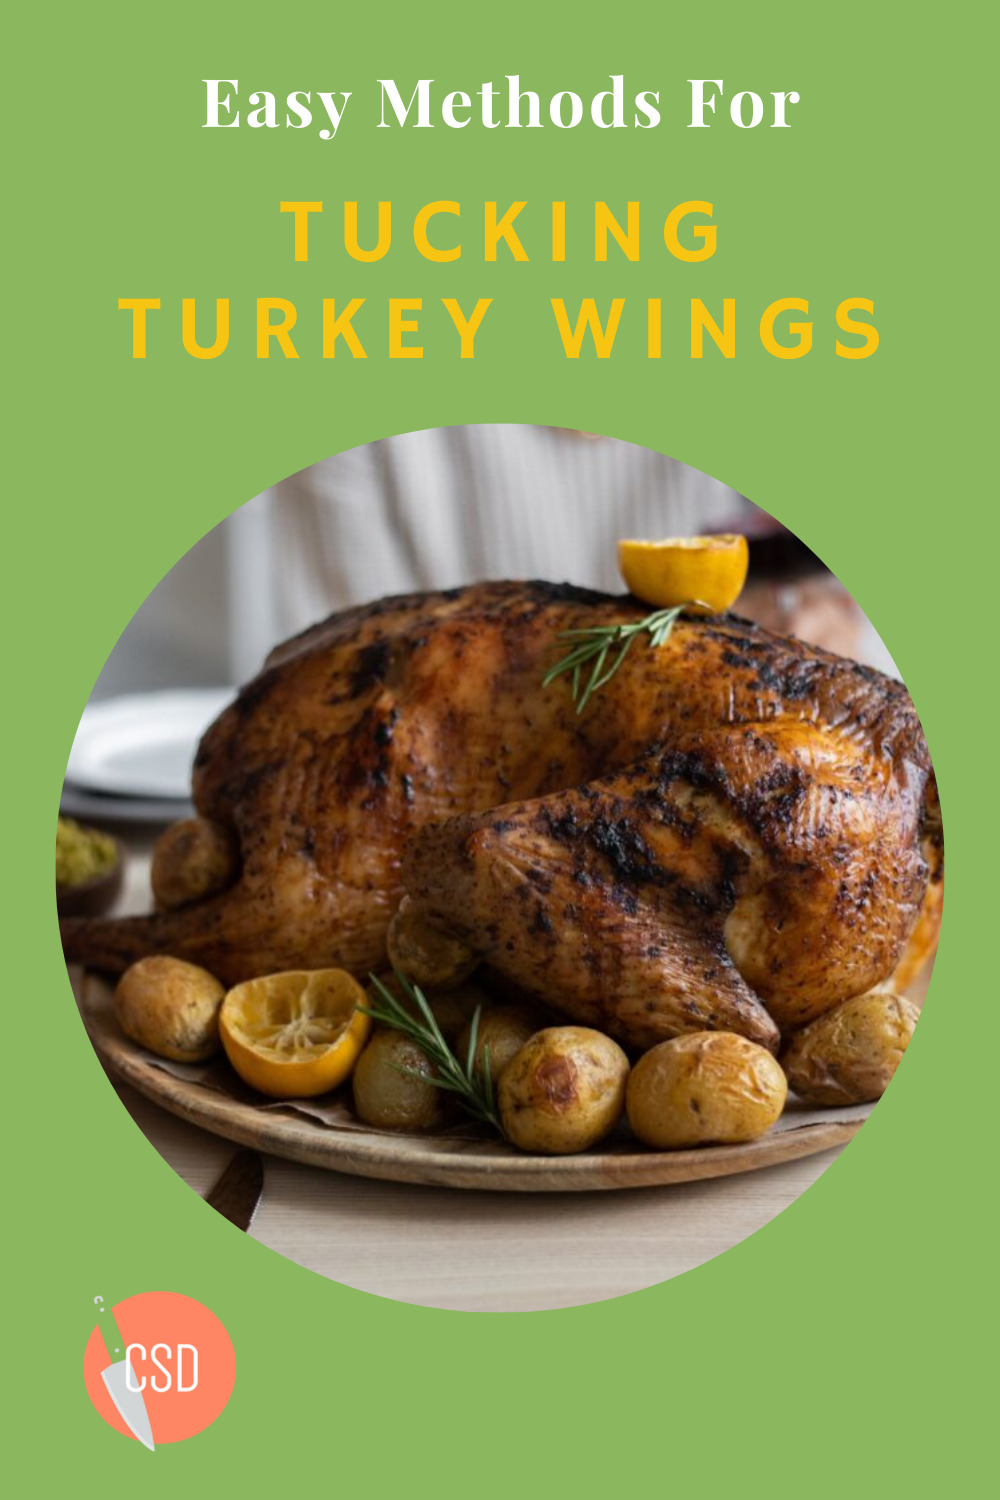 Cutsidedown.com is the best place on the internet to find your new favorite recipes! Get amazing ideas for food and drink to impress all of your friends and family. Next time you want to prepare a turkey dinner, use this easy method for tucking the wings!